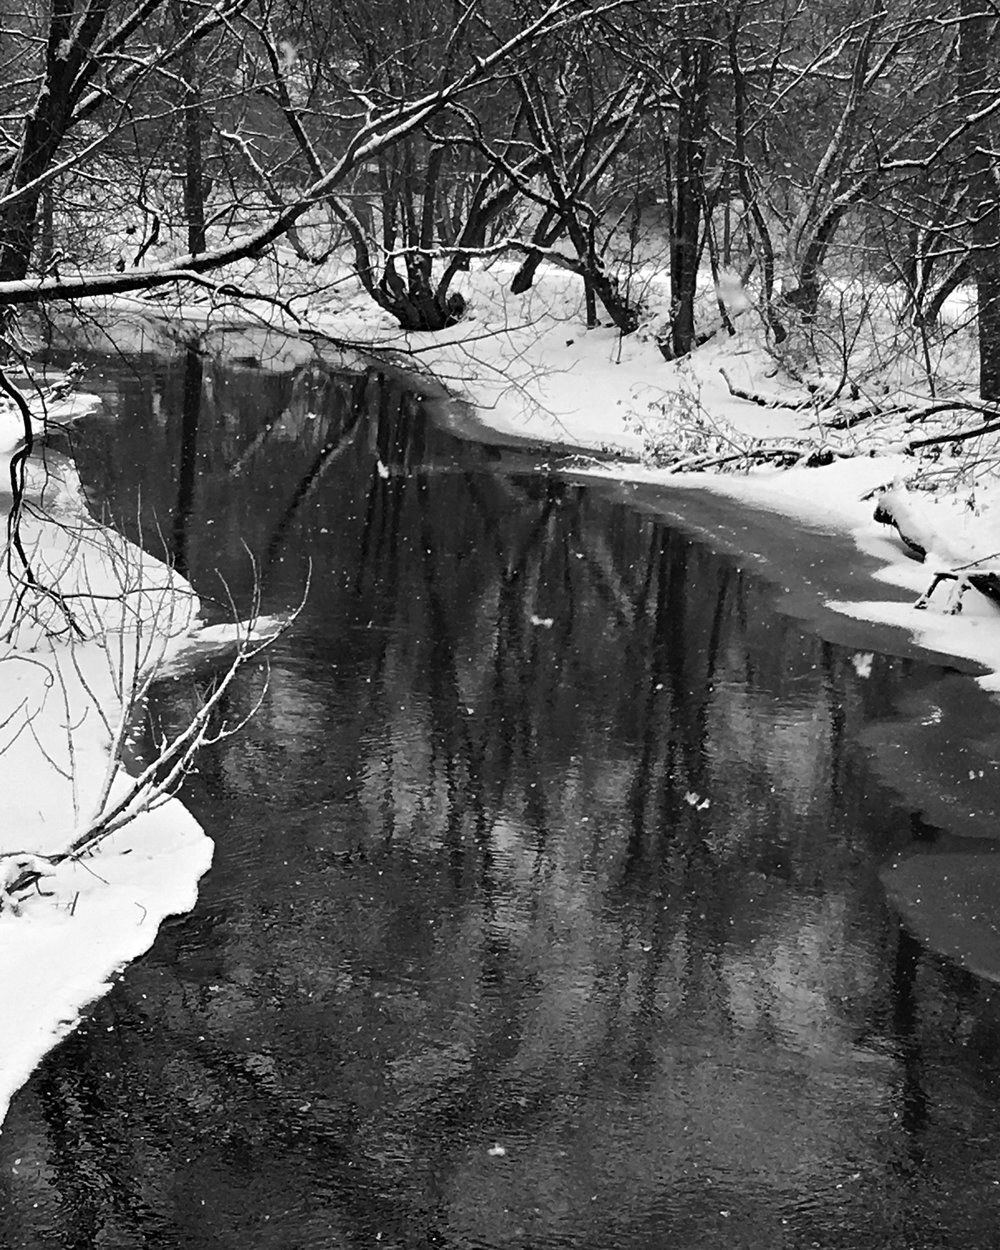 By the River on a Snow Day - Audrey Waitkus